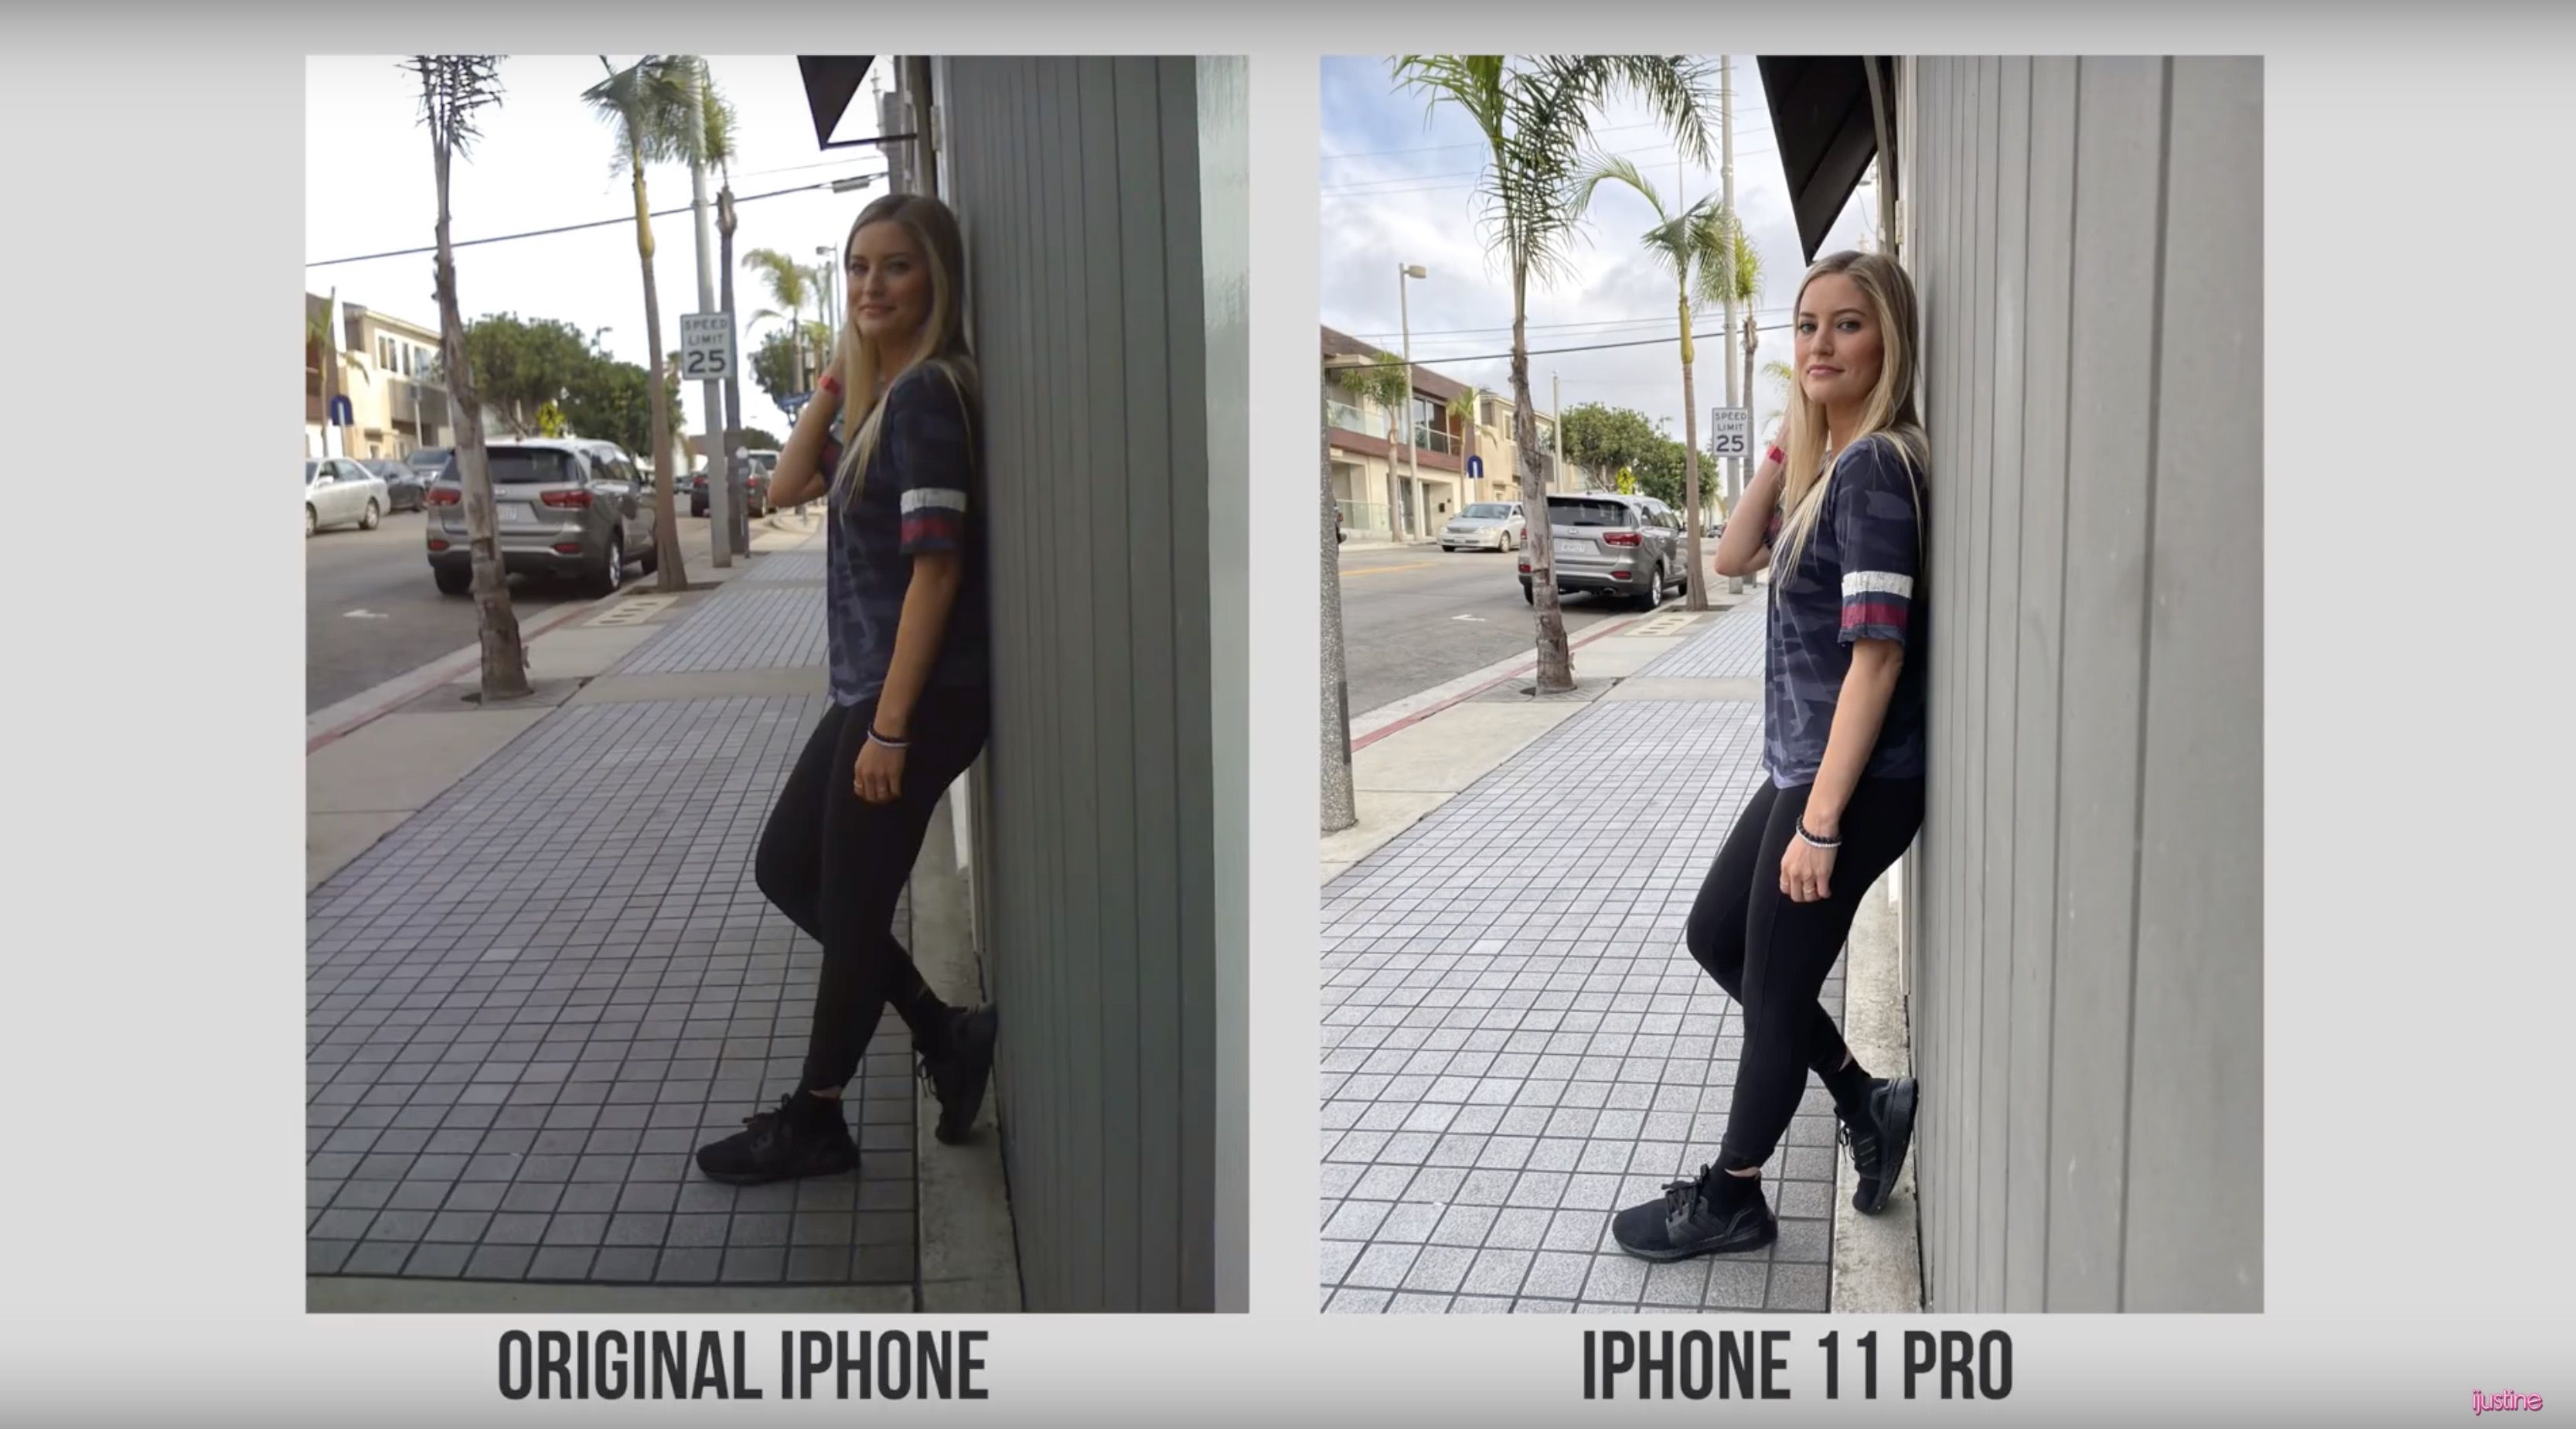 iPhone 11 Pro vs. original iPhone camera